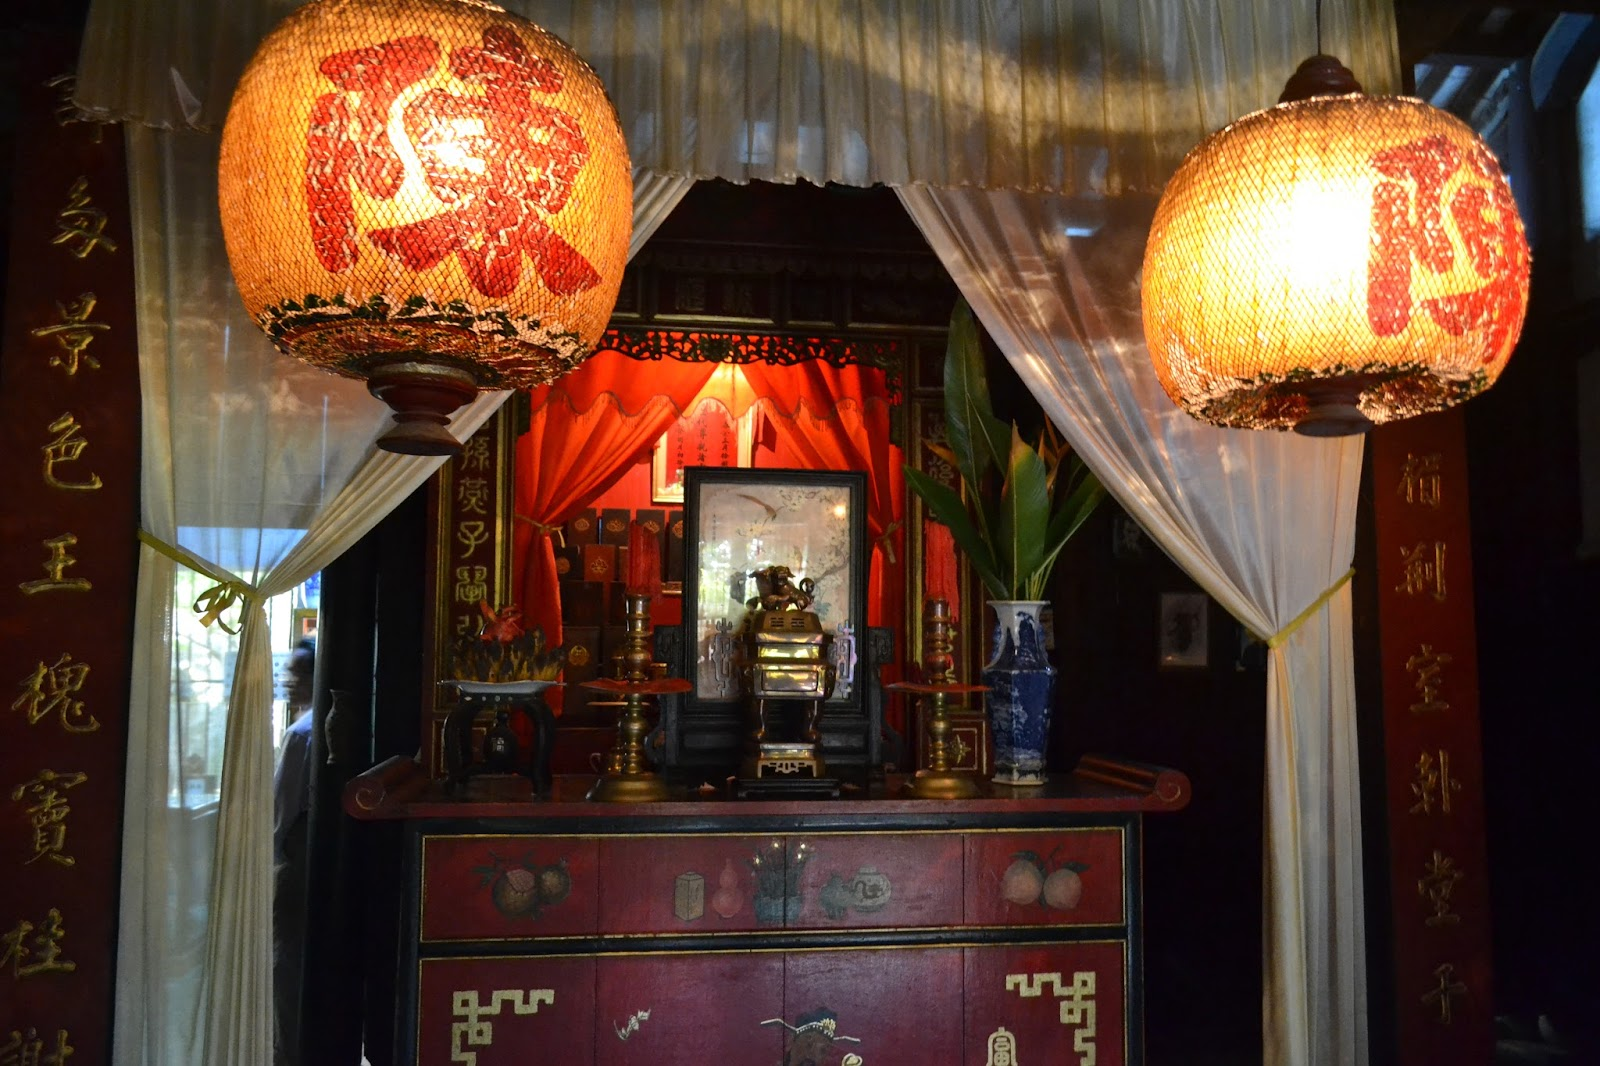 Tran family chappel , old town, Hoi an